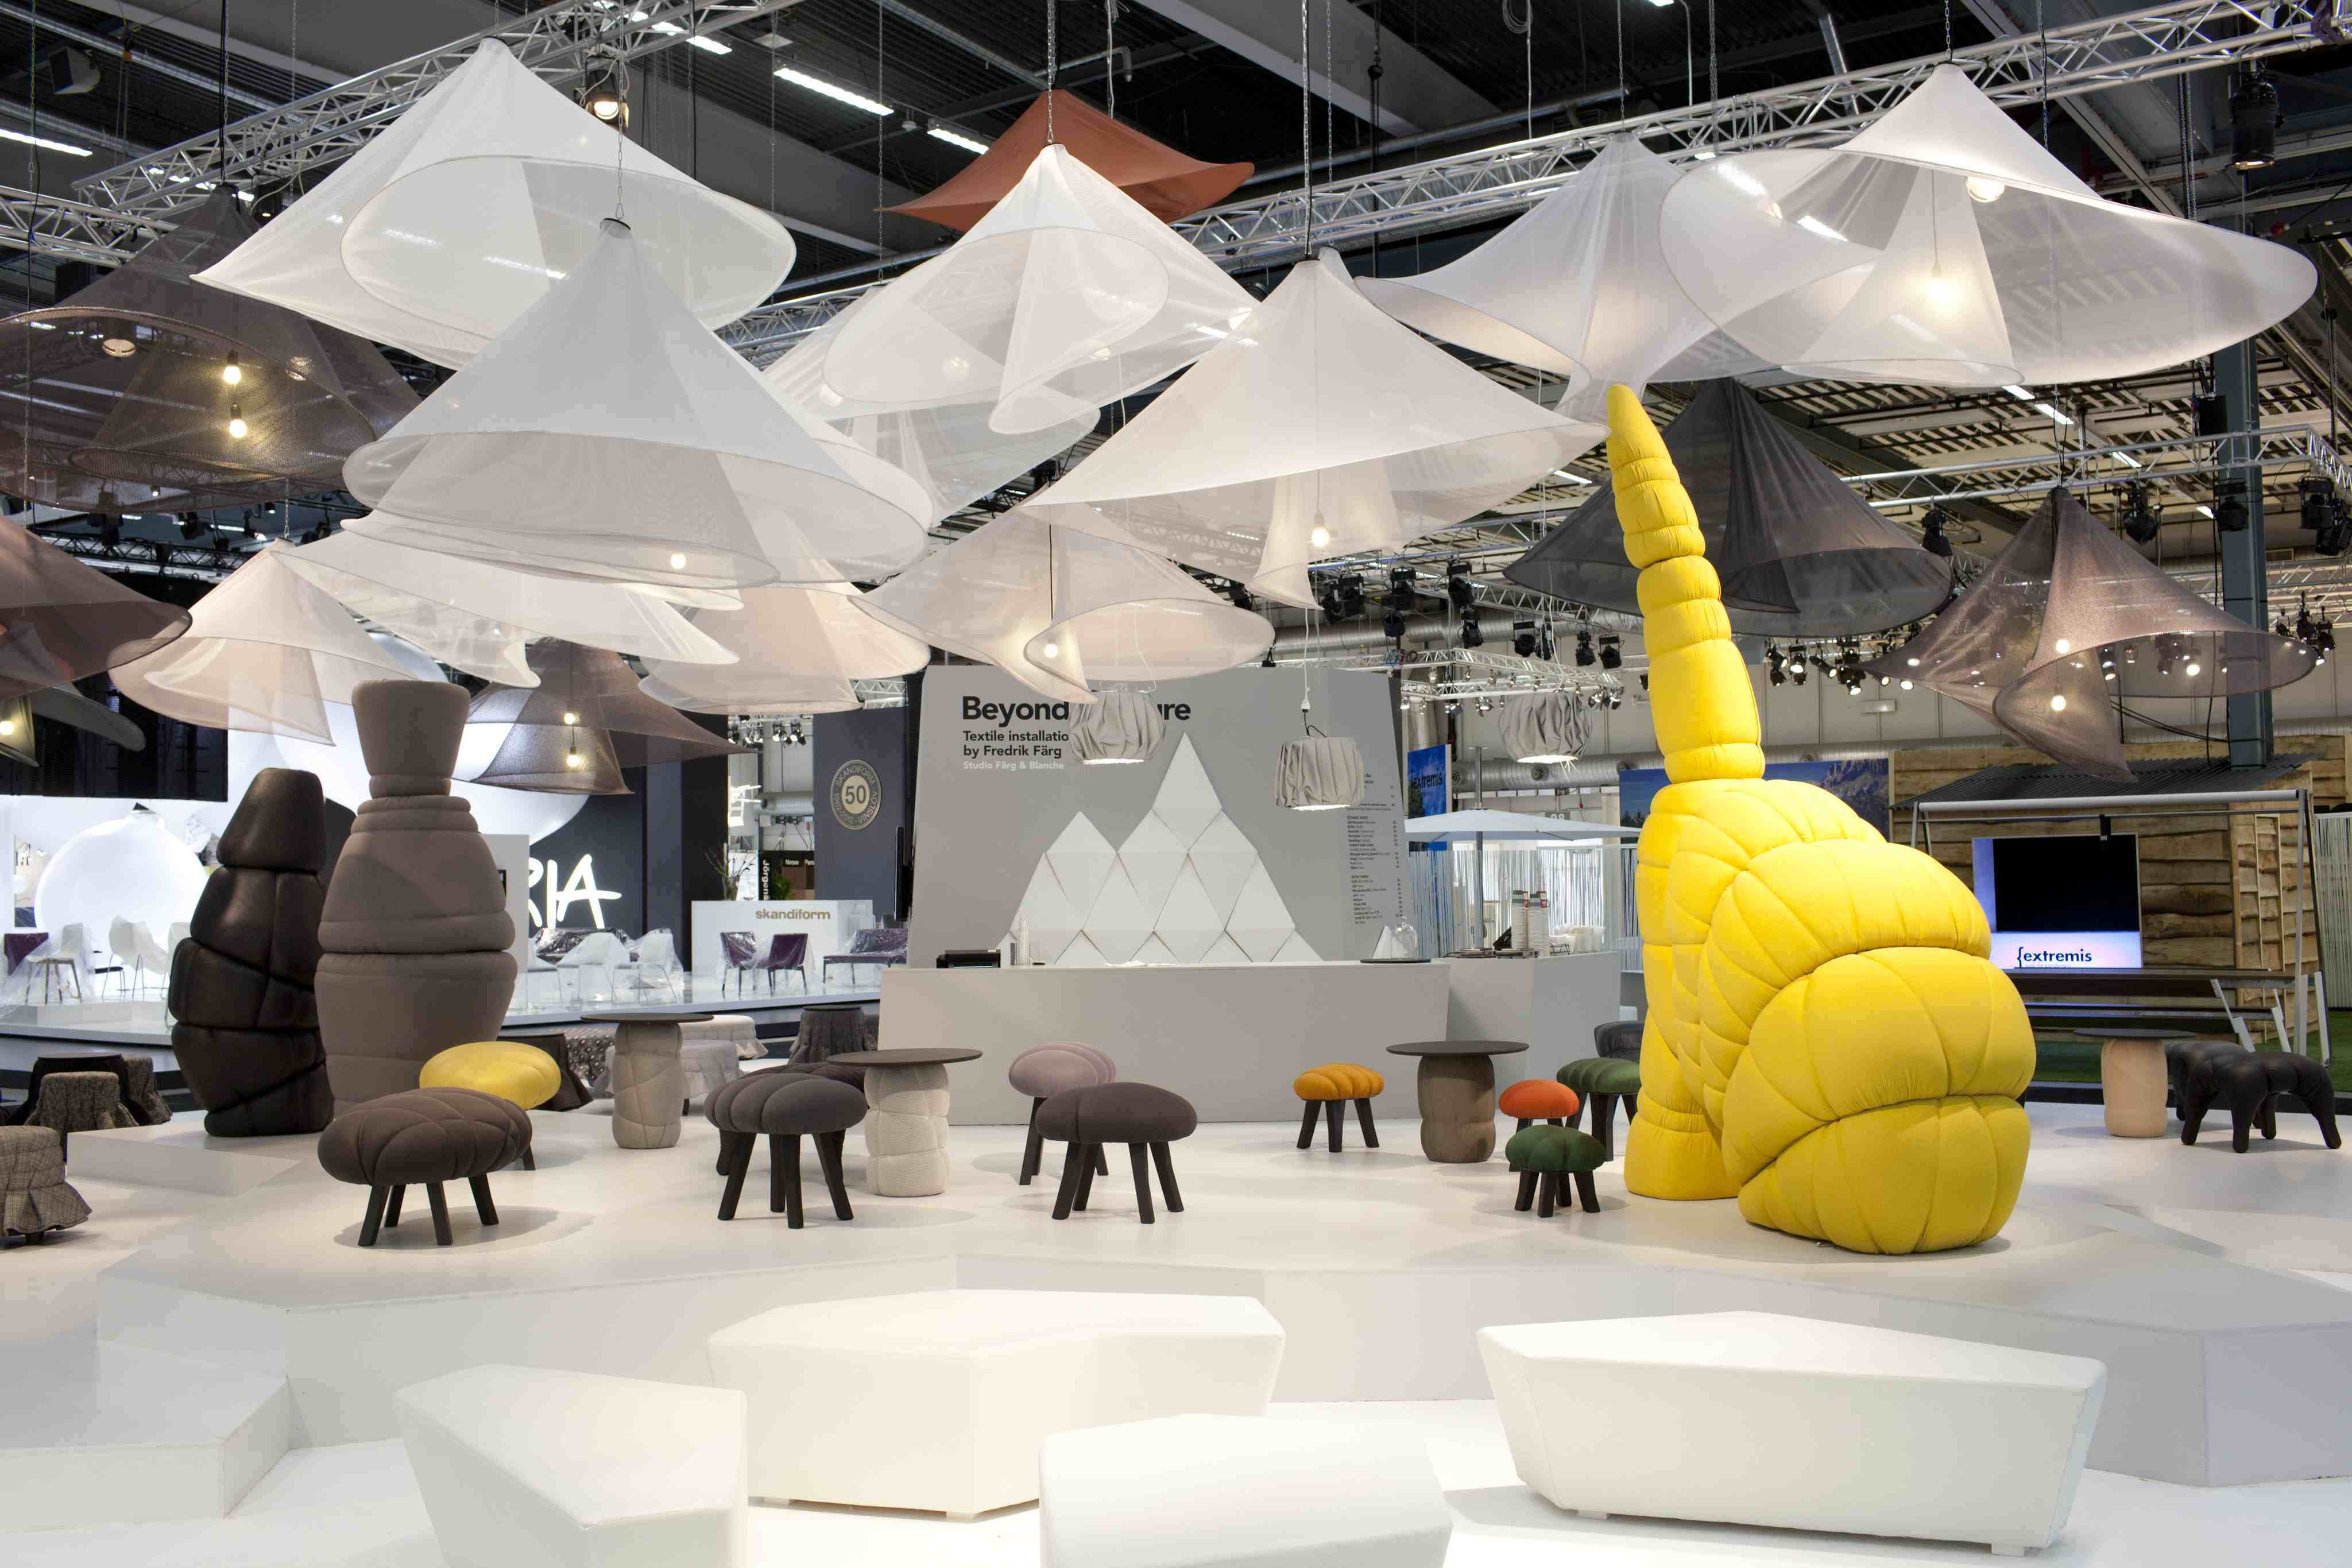 Highlights of Stockholm Furniture 2019, Nordic Design Fair, Interior Design, Sweden, Stockholm, Design agenda Europe, Nordic design, Luxurious Design